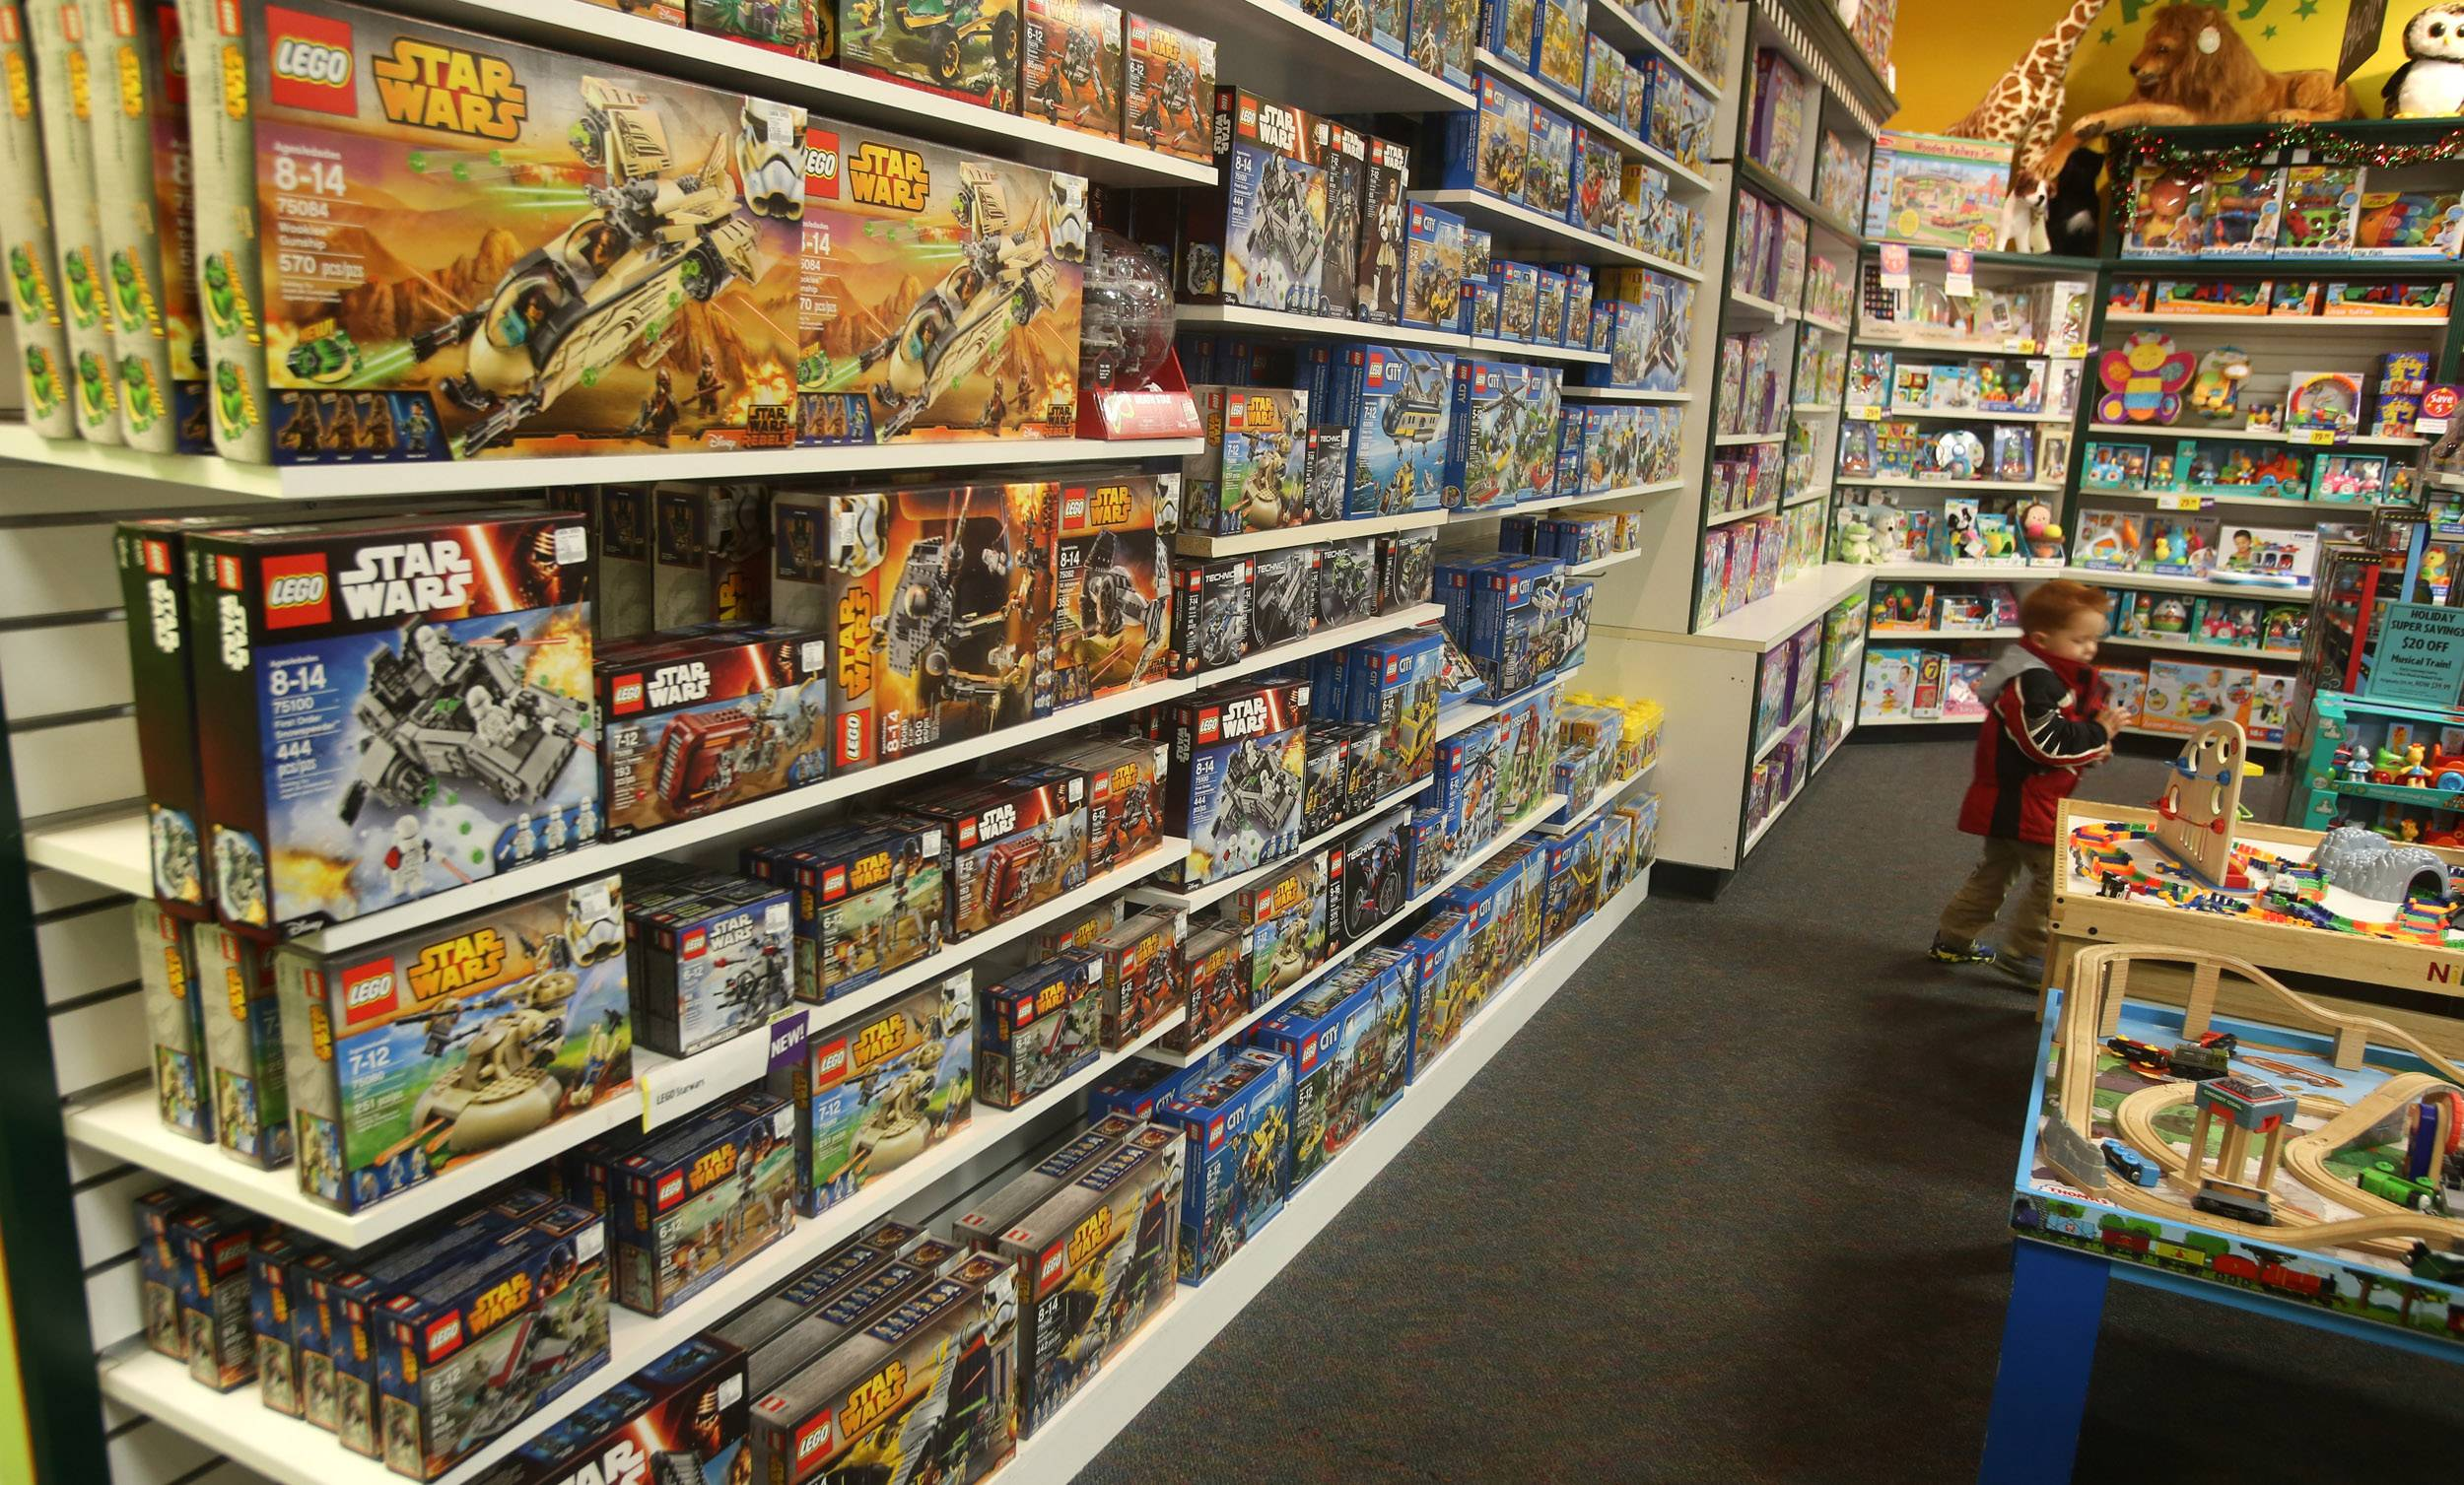 Star Wars Lego toys are a popular gift this season at the Learning Express Store in Naperville.